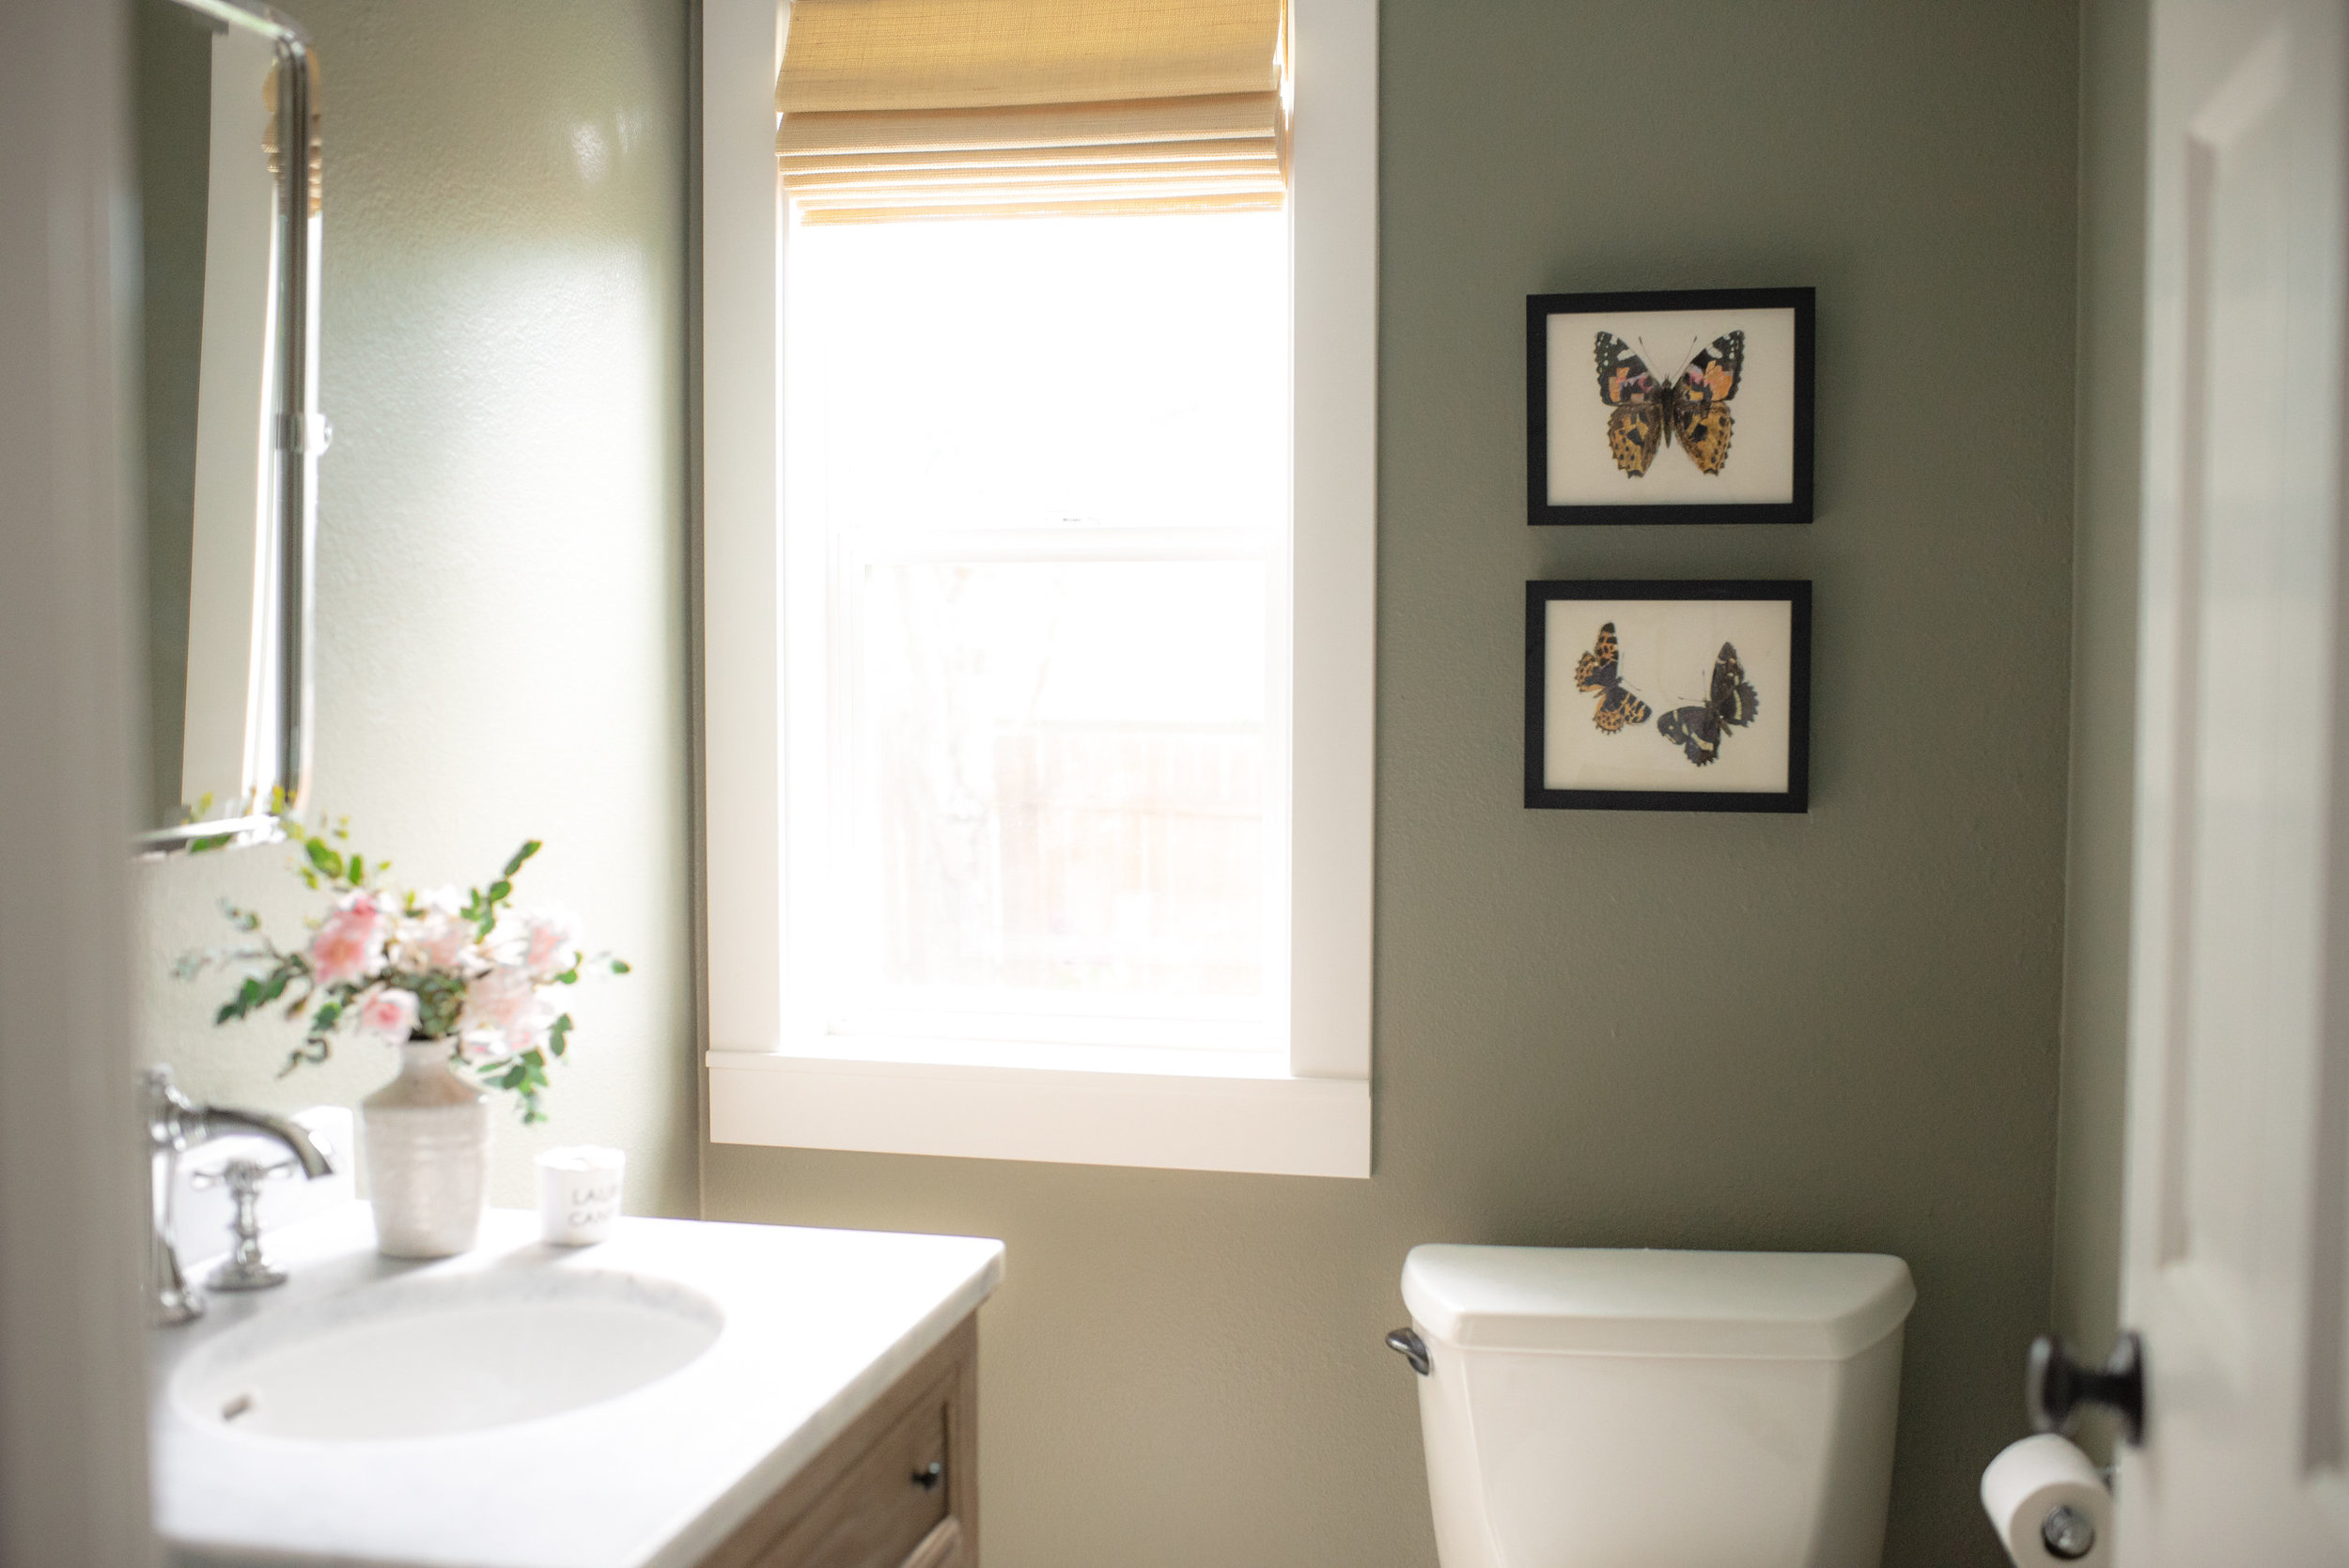 Corvallis_Eclectic_Traditional-10311.jpg